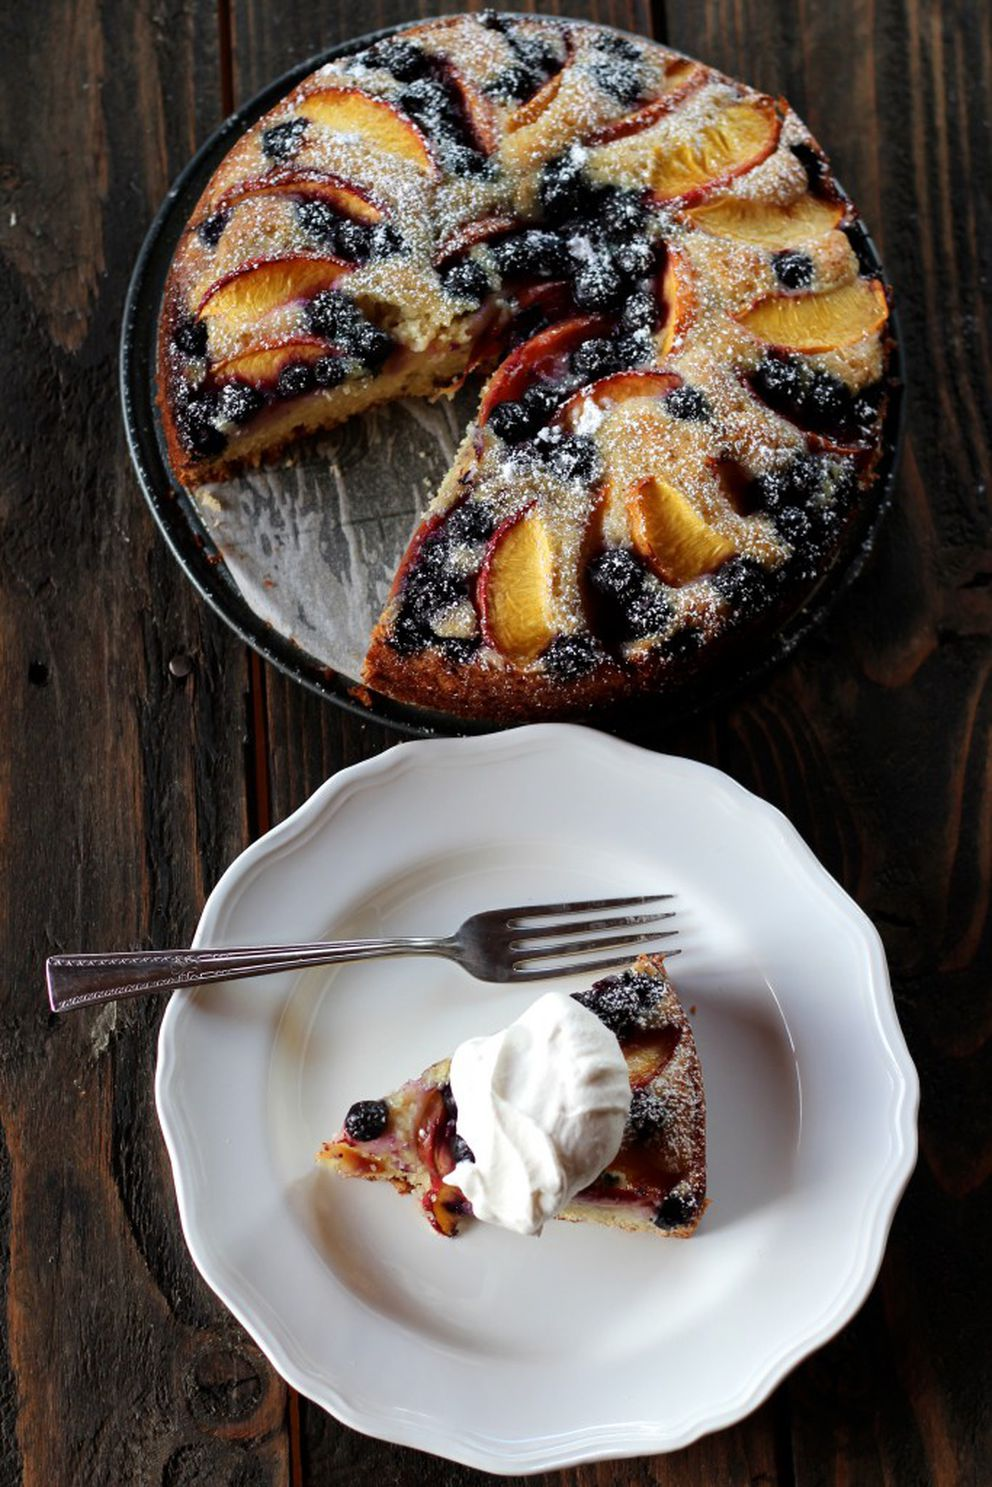 With a dusting of powdered sugar and a dollop of freshly whipped cream, this blueberry nectarine cake is ready to enjoy. (Maya Wilson / Alaska from Scratch)